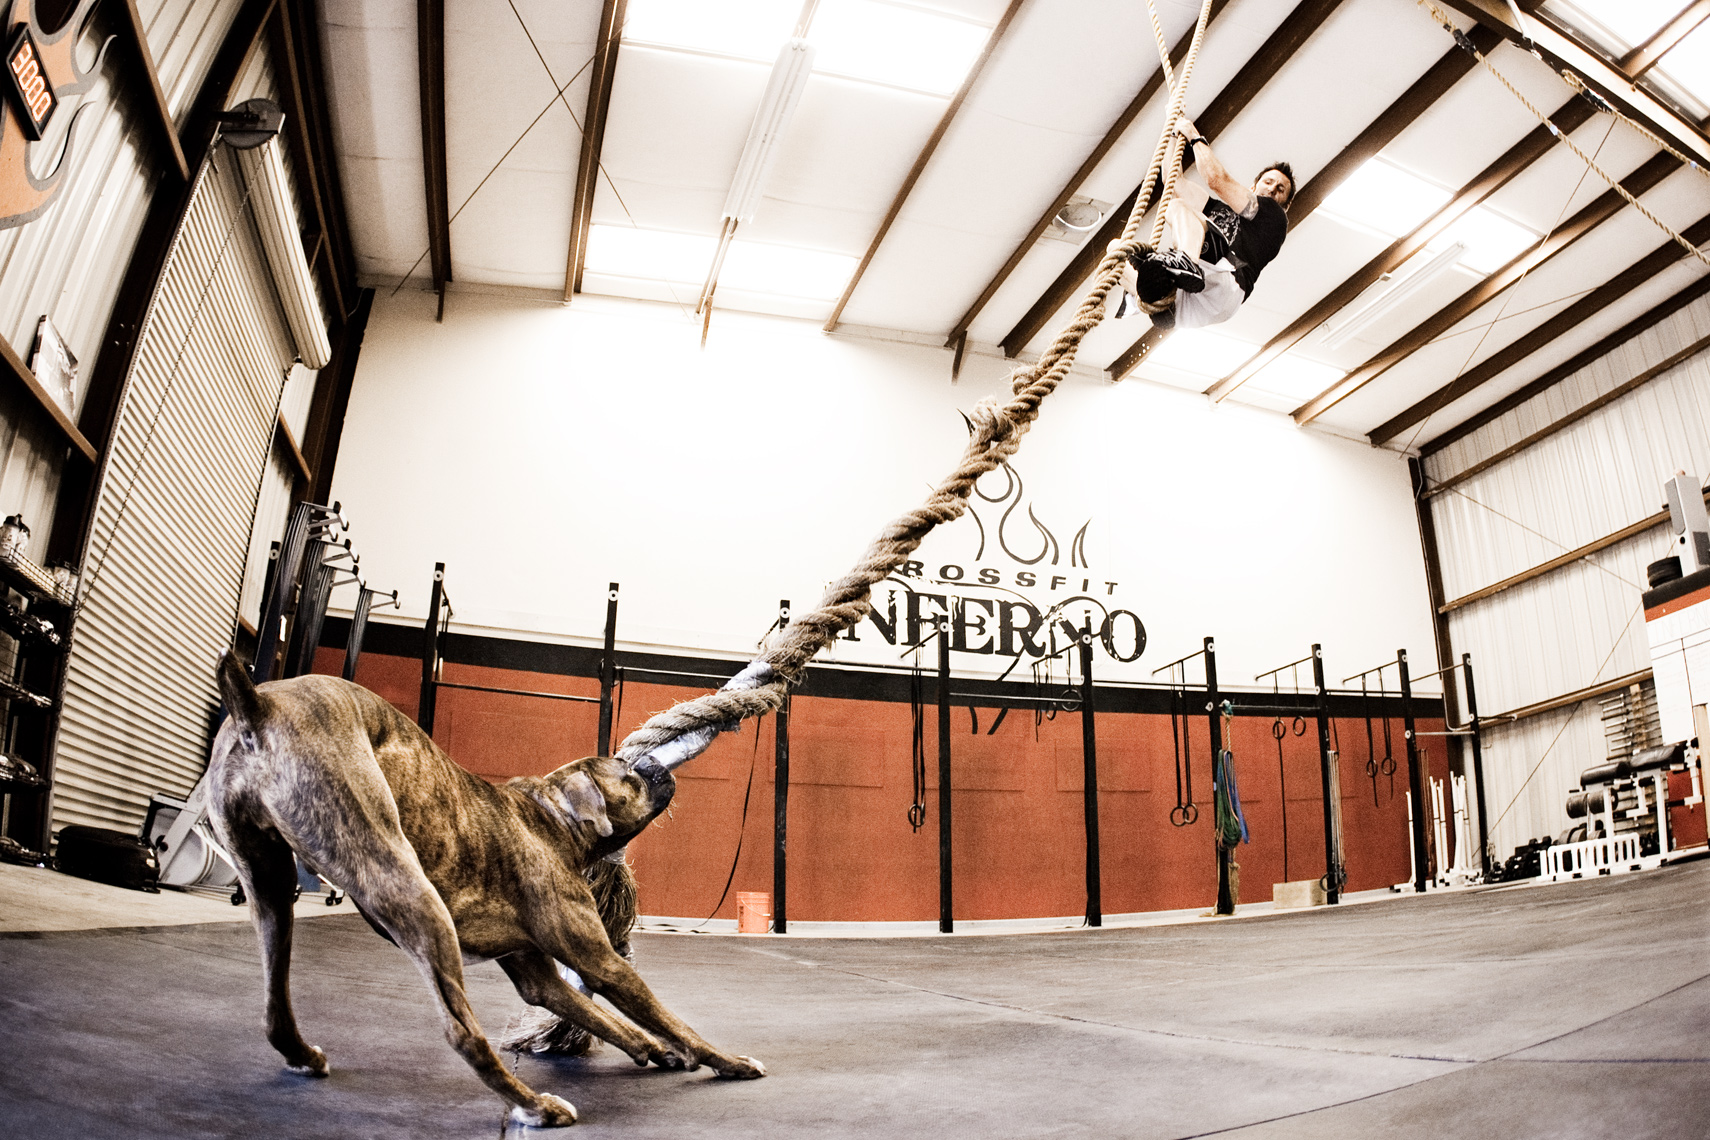 Crossfit, LA Dog Photography, Michael Brian, Los Angeles, Sports, Bill Grundler, Crossfit,  rope climb, Boxer dog pulling on rope